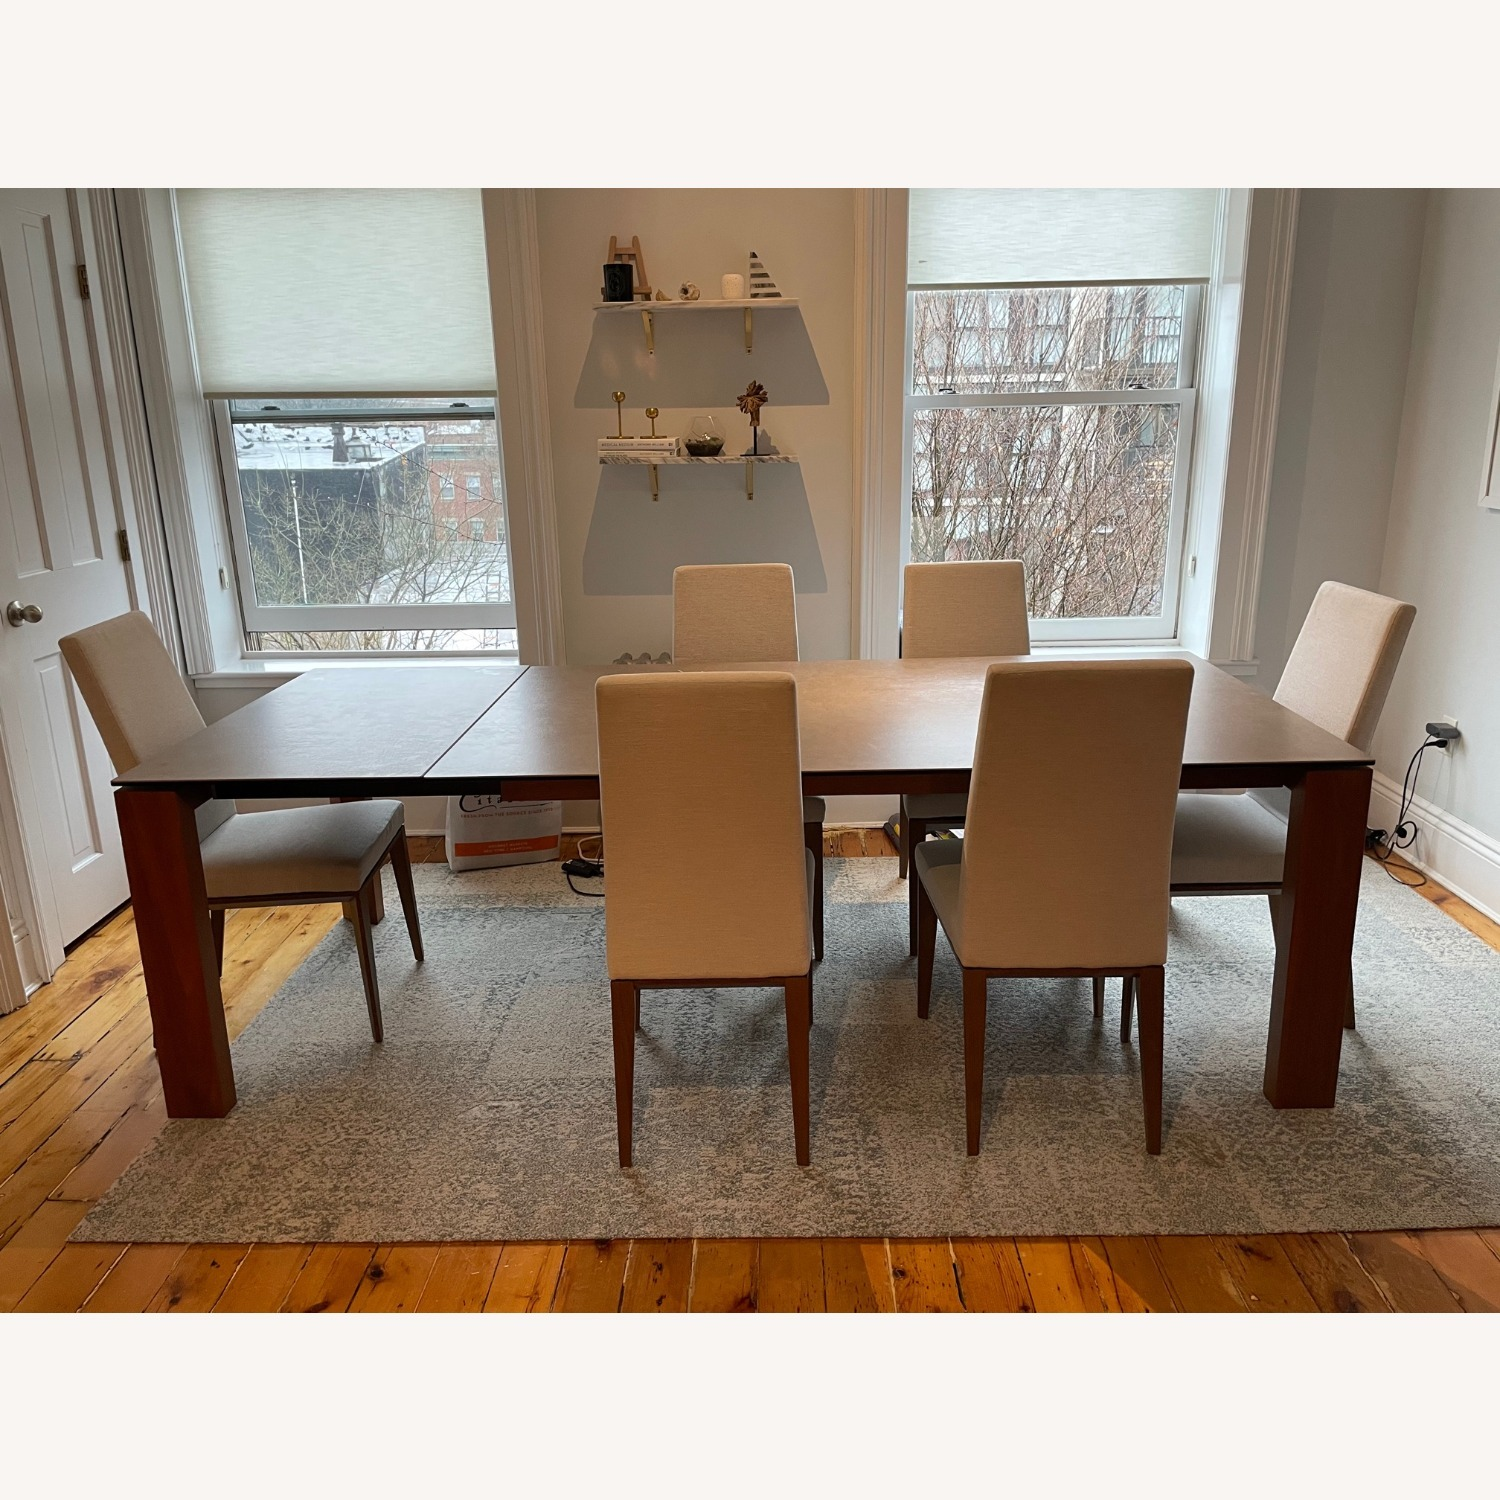 Calligaris Omnia Dining Room Table with Extension - image-2